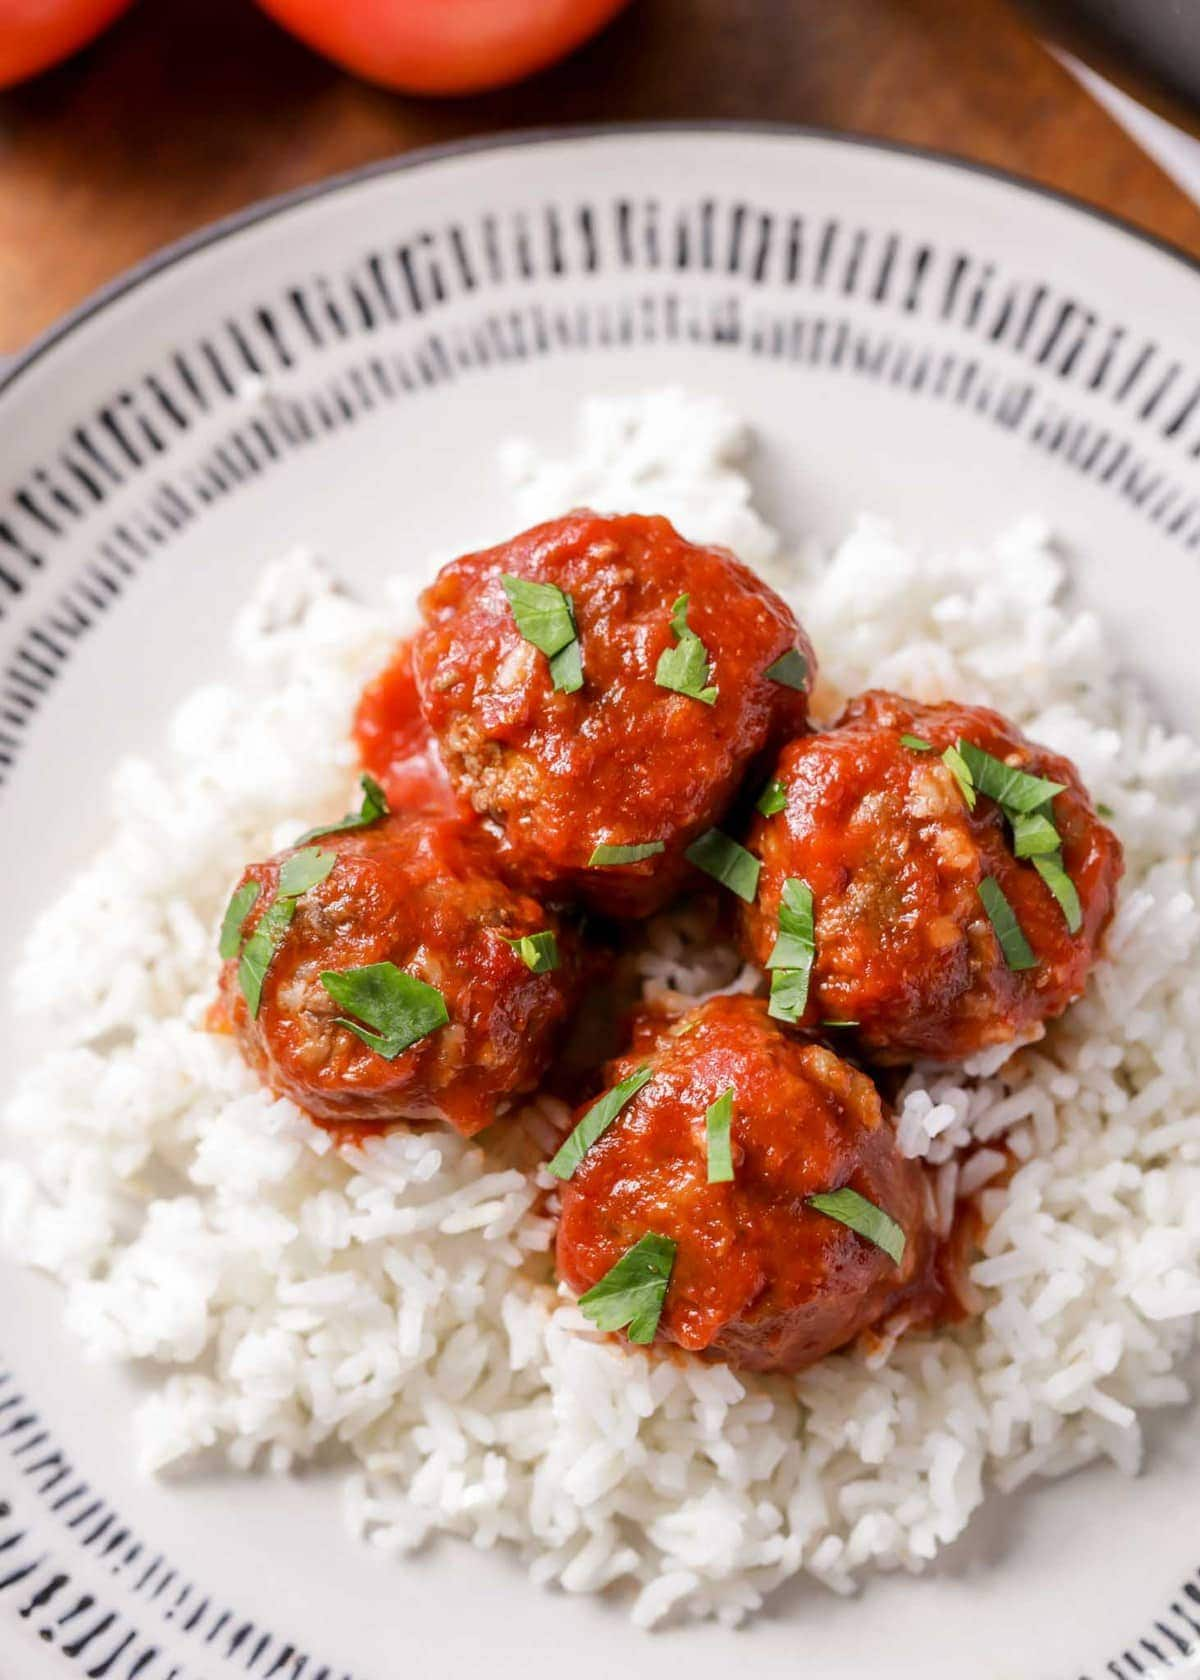 Porcupine meatball recipe served over white rice